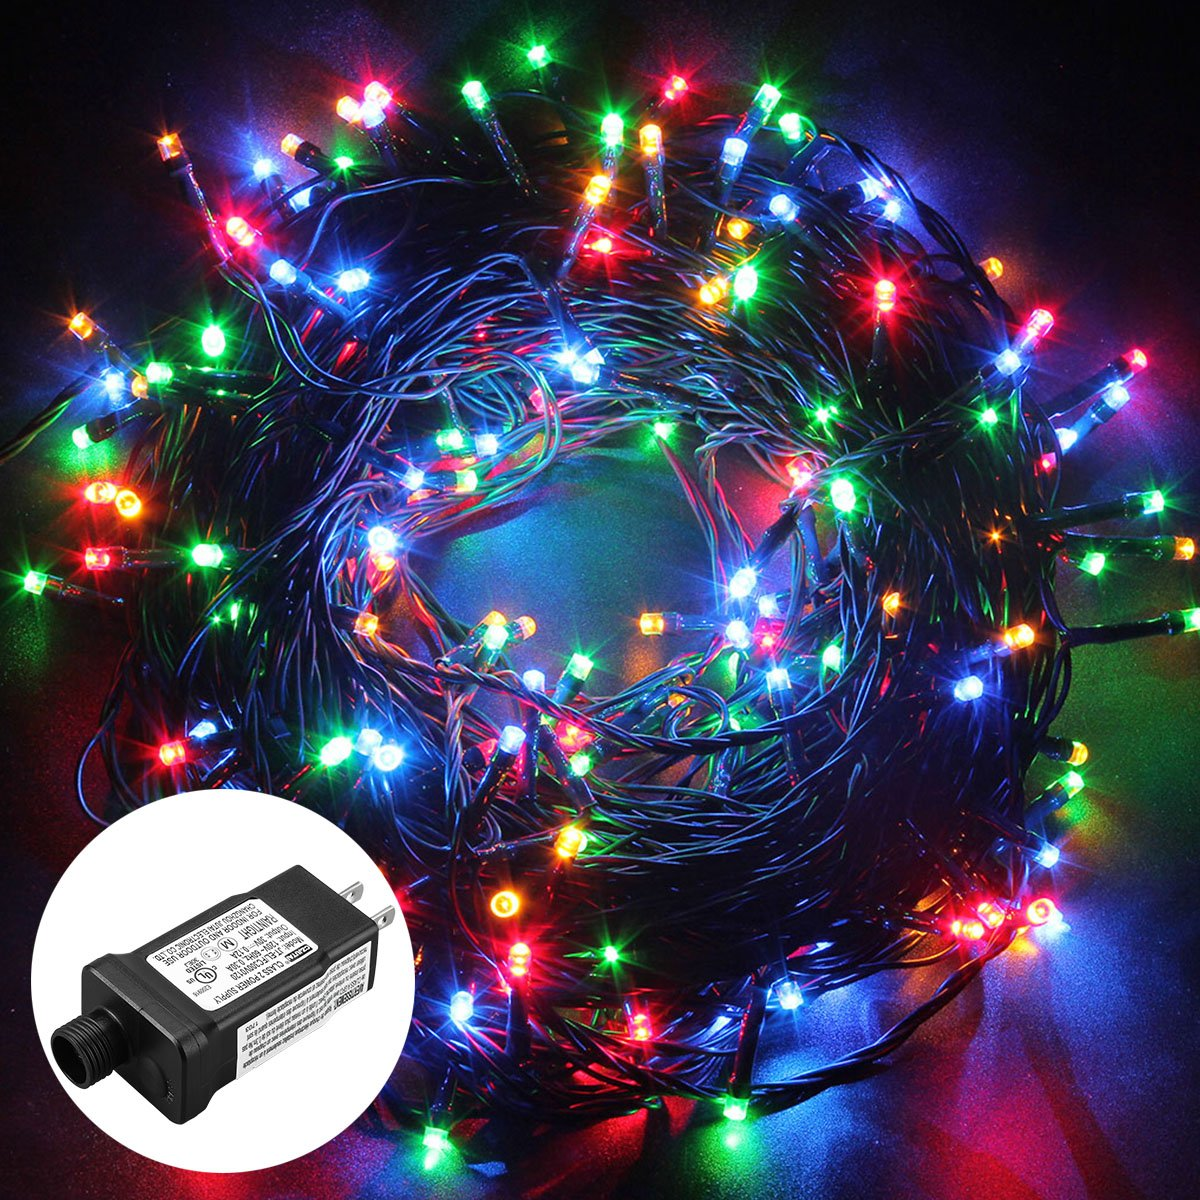 Excelvan Safe Low Voltage 250 LEDs 50M/164FT Dimmable Fairy String Lights with 8 Modes for Bedroom Patio Garden Gate Yard Party Wedding Christmas Decoration, Multi Color